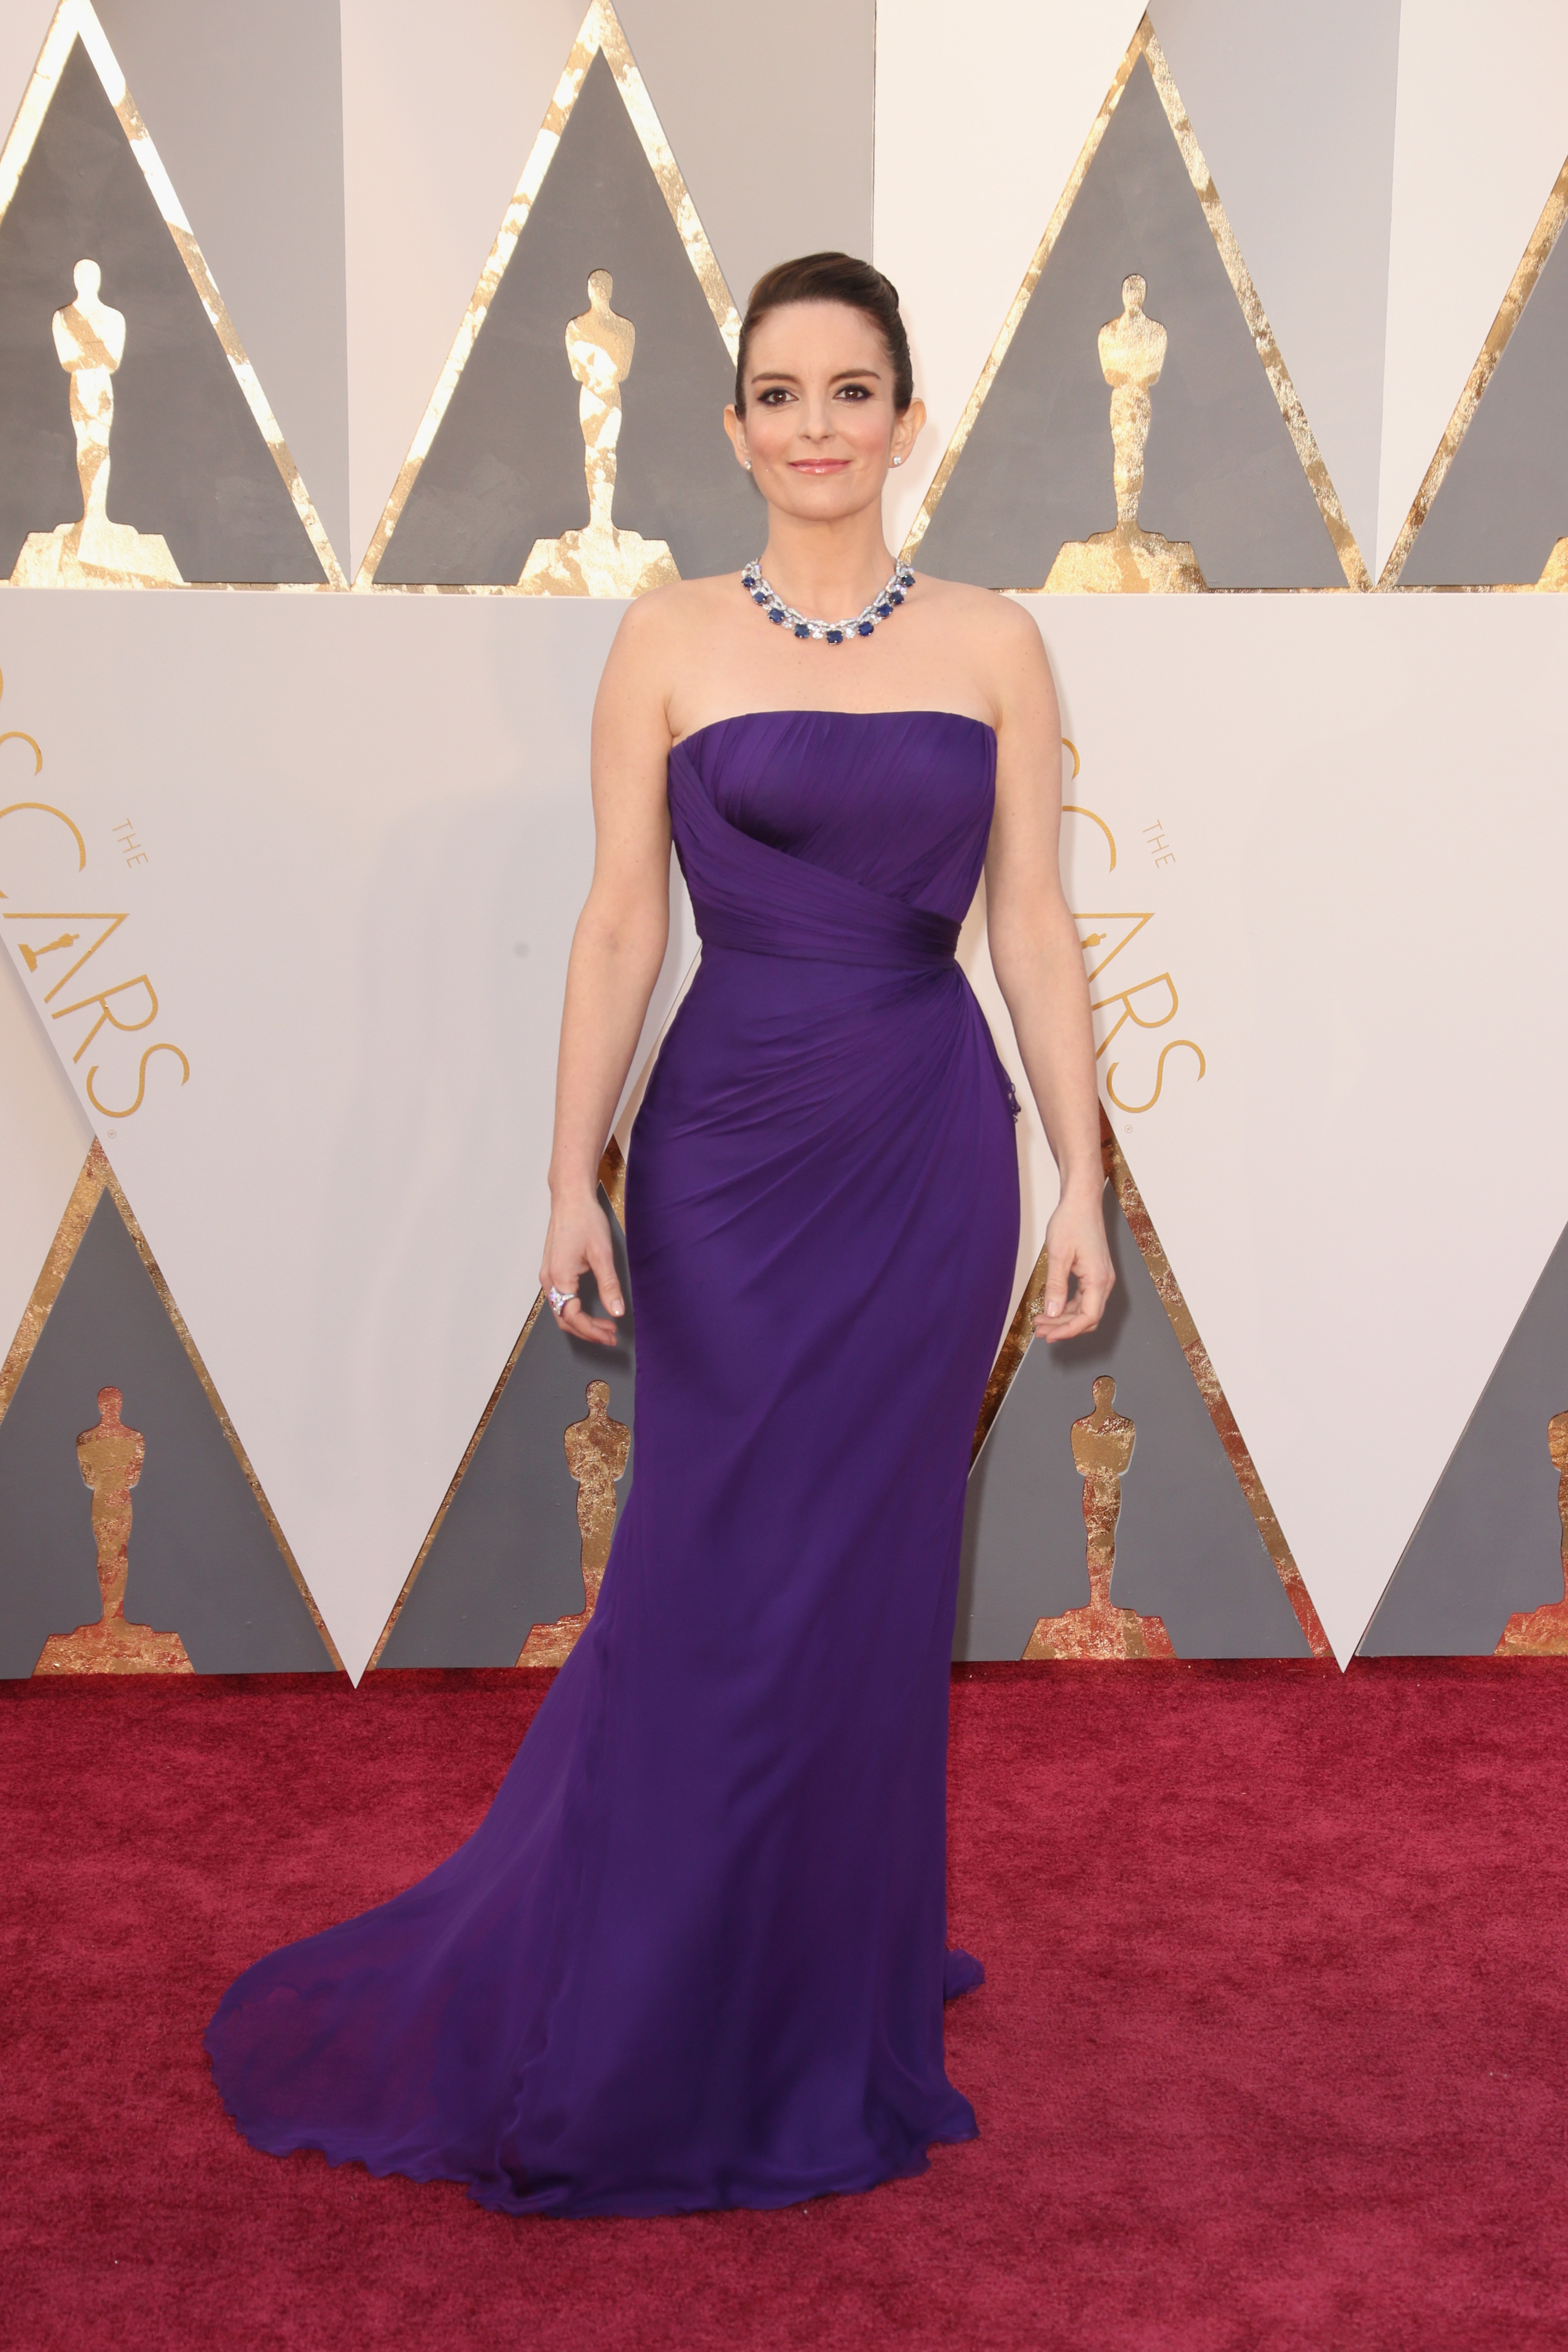 Tina Fey attends the 88th Annual Academy Awards on Feb. 28, 2016 in Hollywood, Calif.